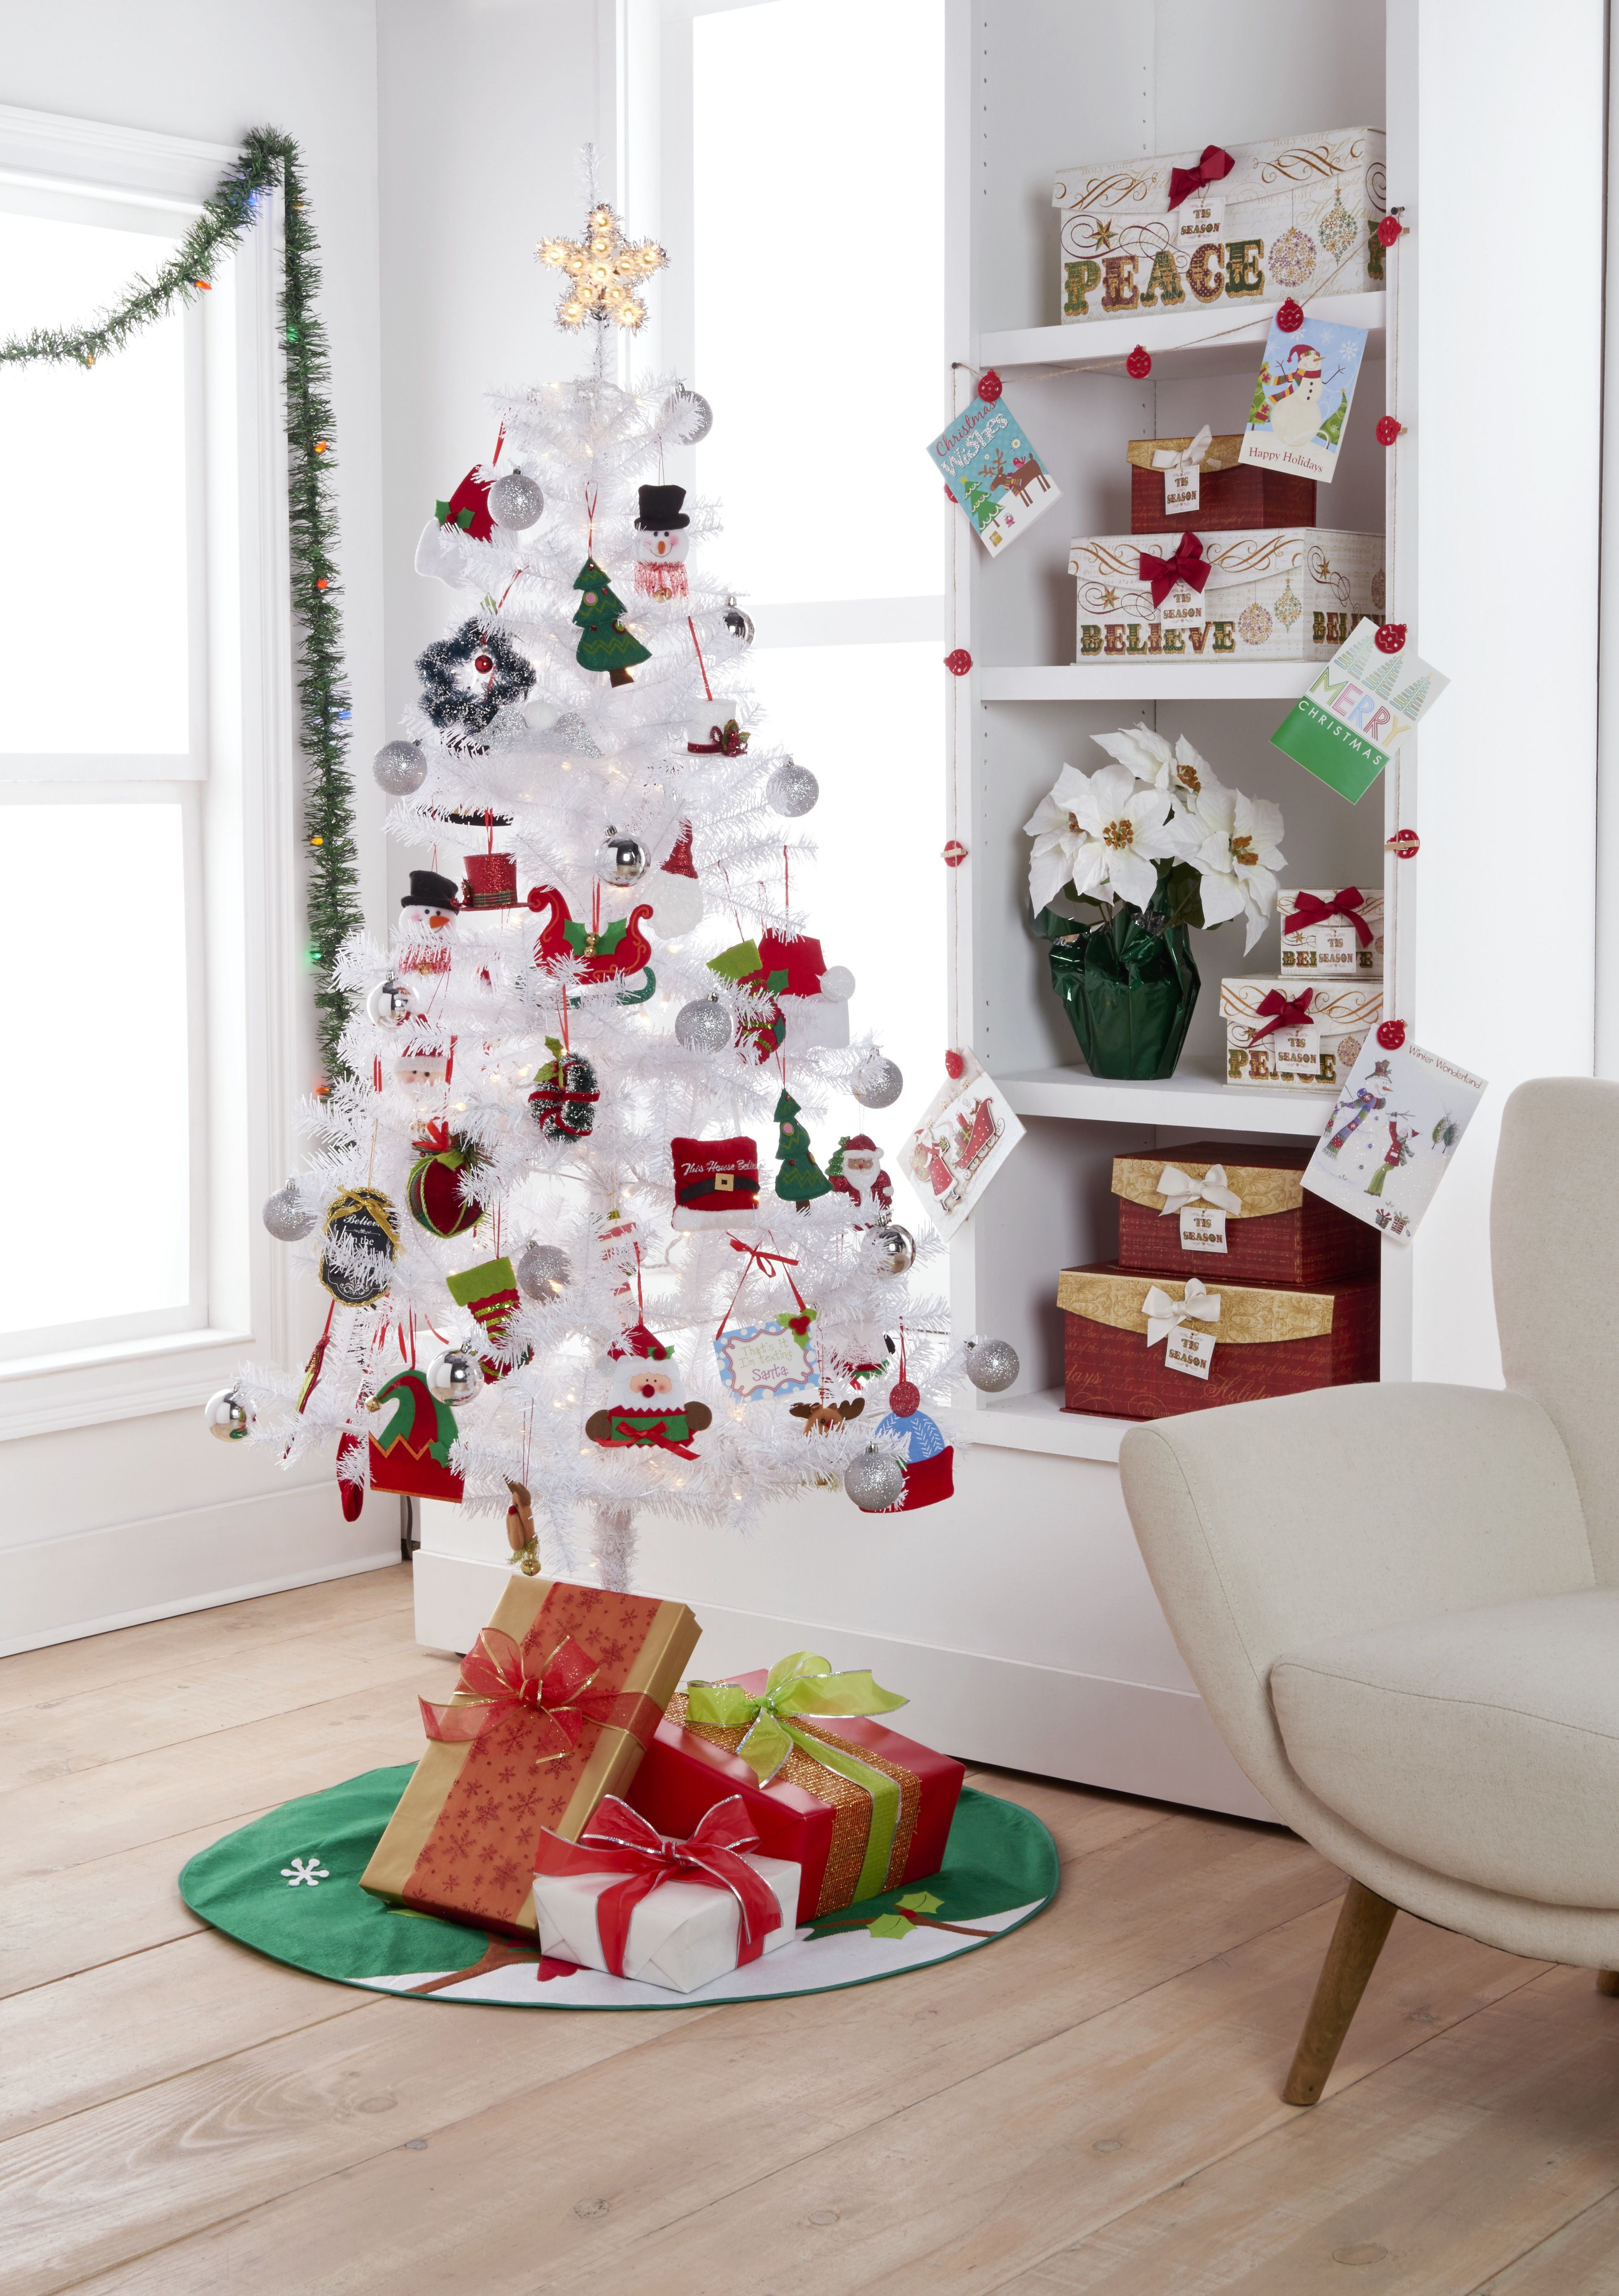 Pin by Dollar General on Home for the Holidays | Pinterest | Dollar ...